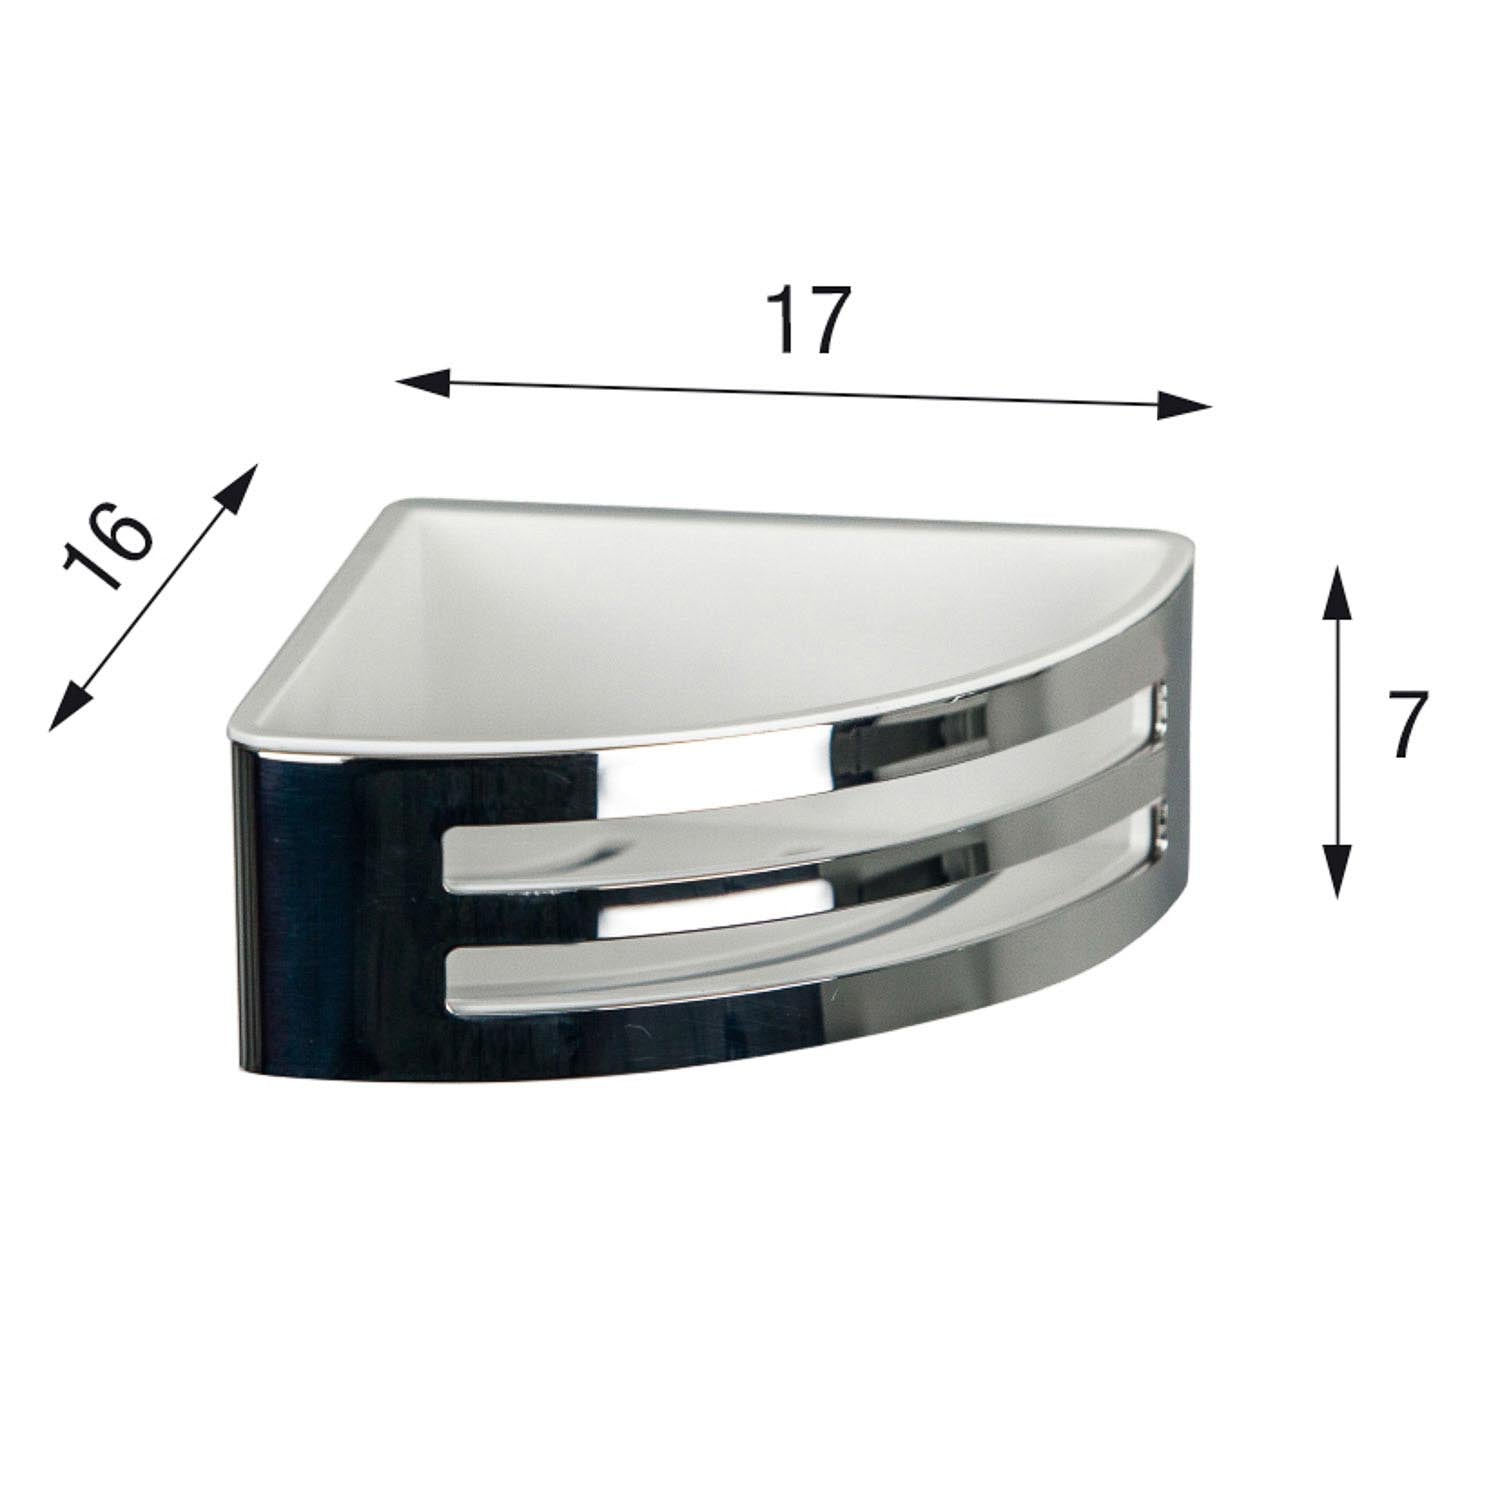 Easyclean Corner Shower Basket with a chrome finish and black removable insert dimensional drawing